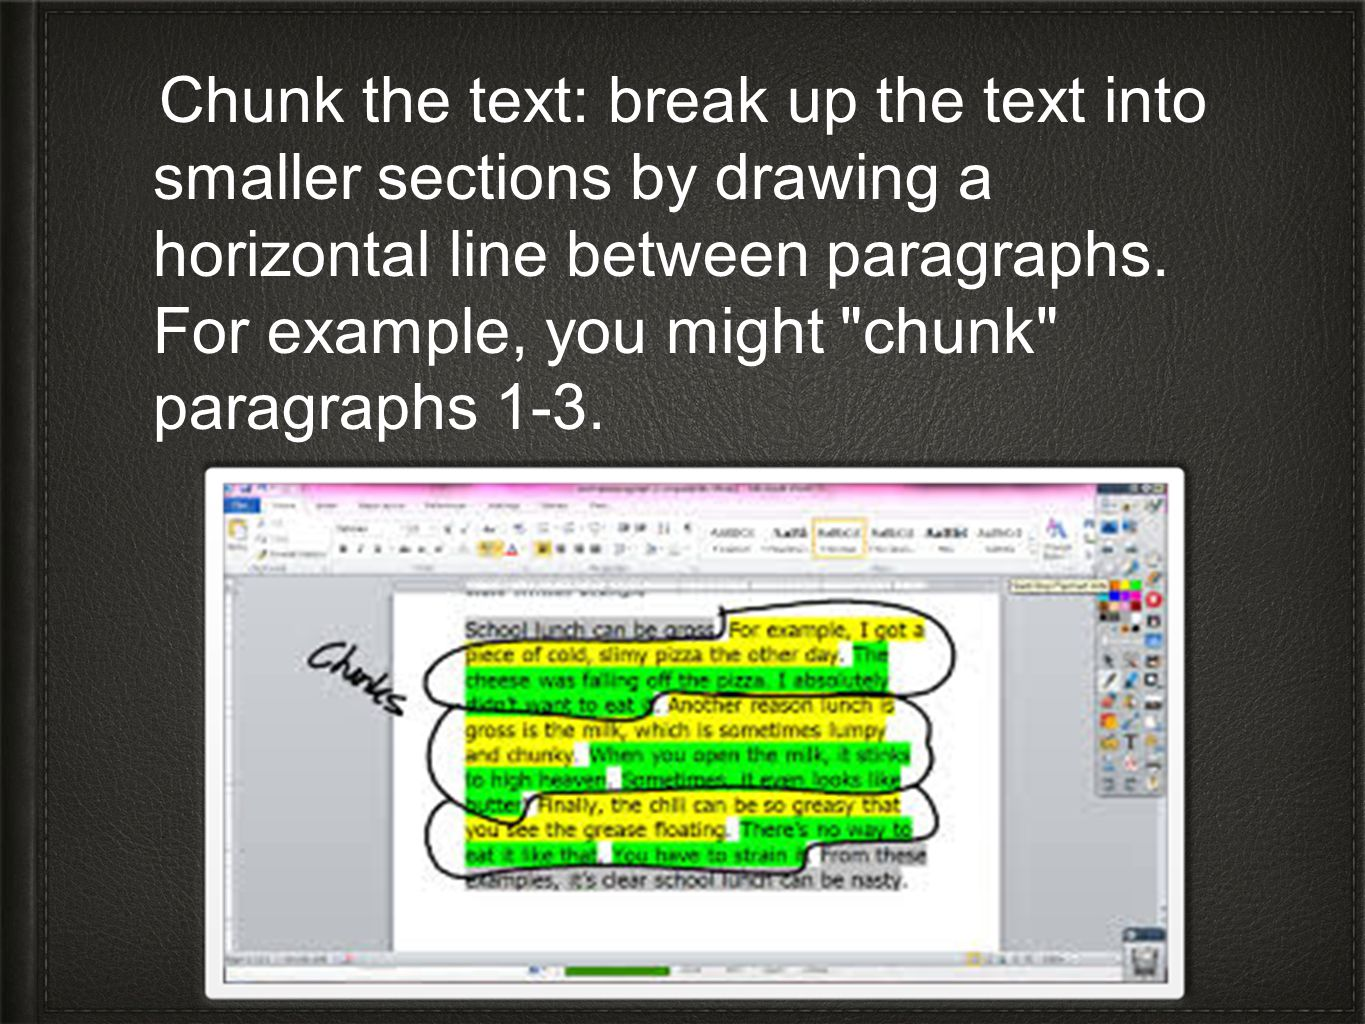 Chunk the text: break up the text into smaller sections by drawing a horizontal line between paragraphs. For example, you might